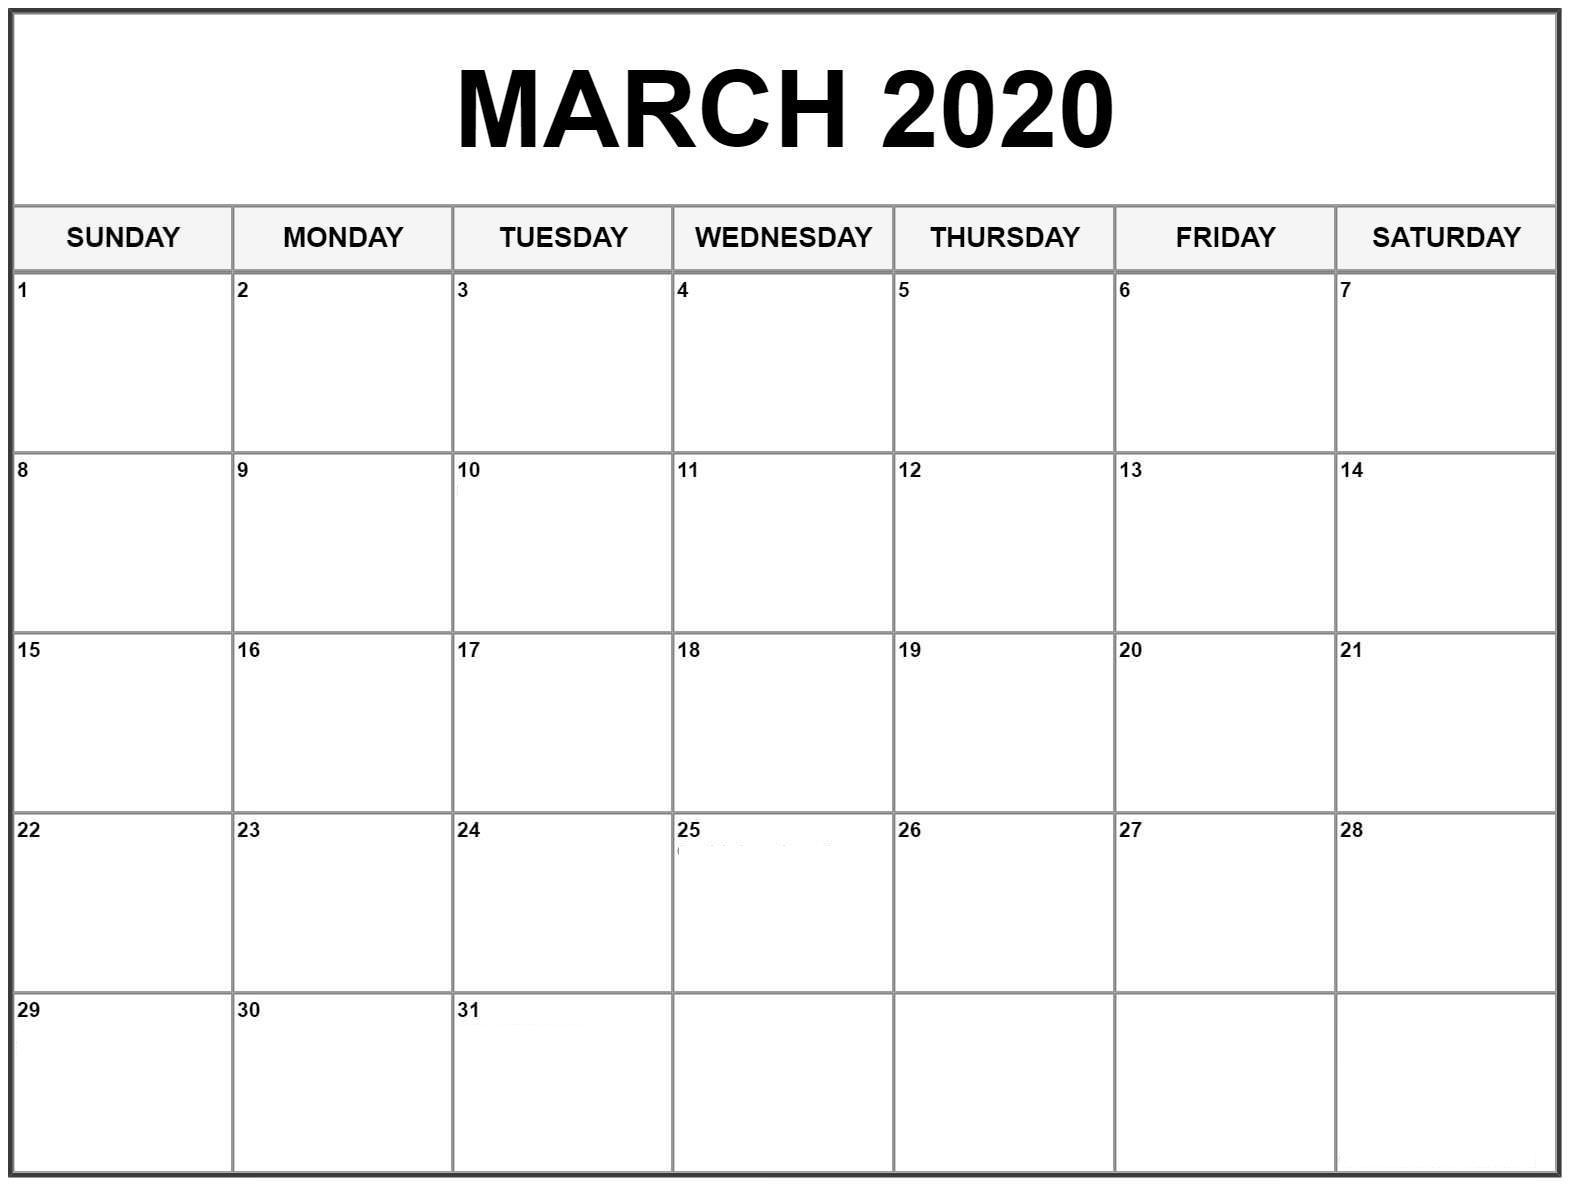 March 2020 Calendar US Holidays